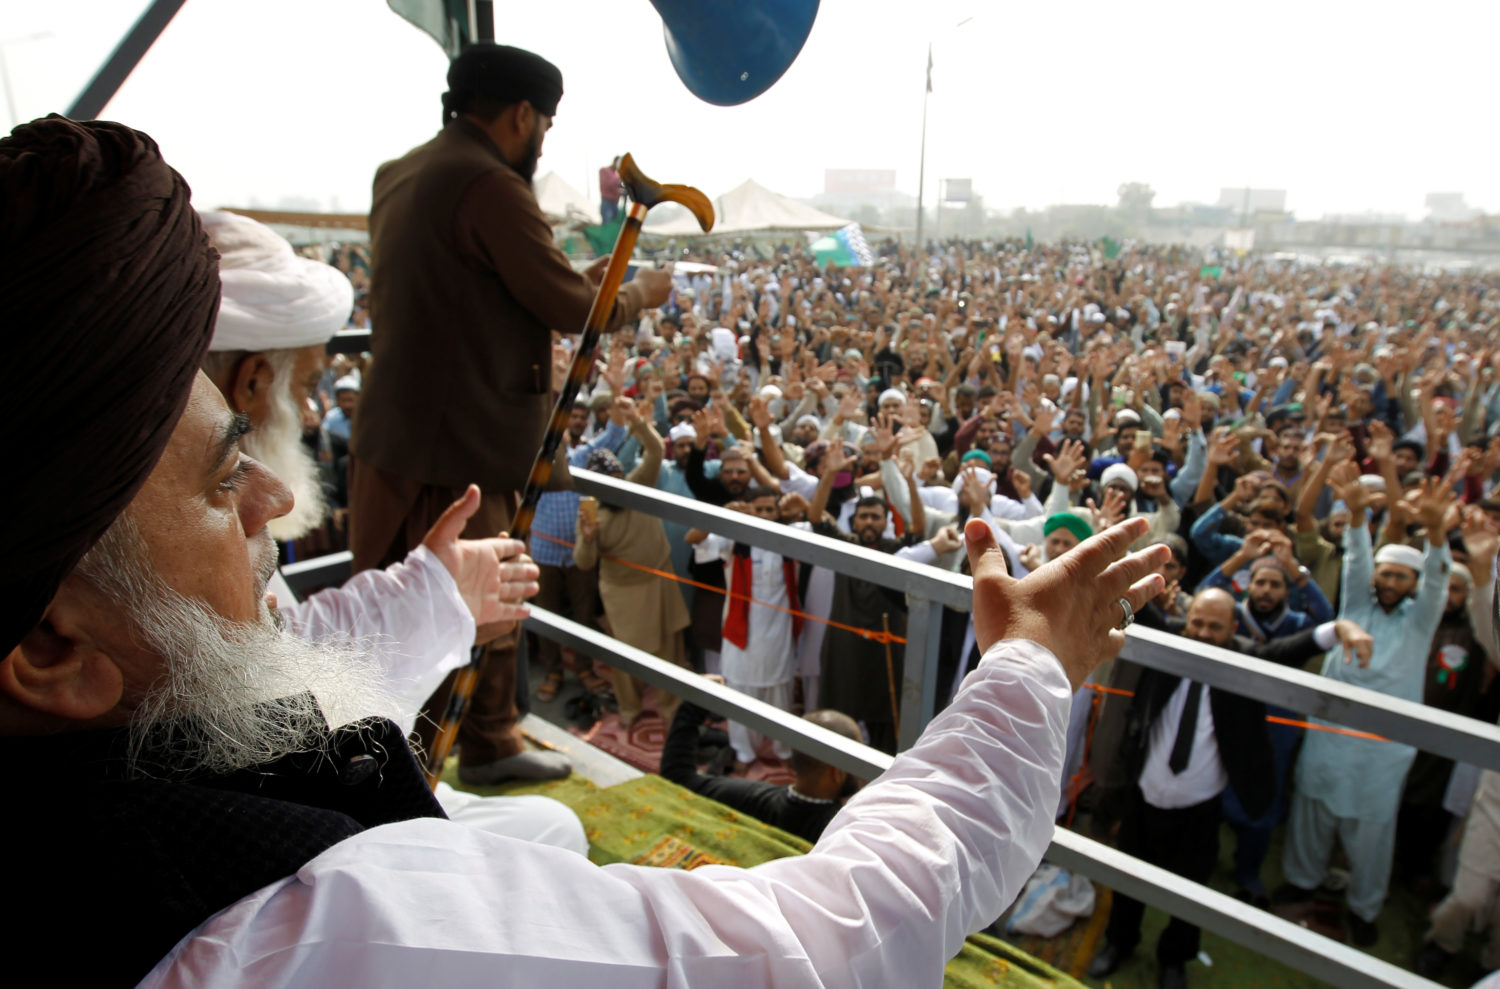 Khadim Hussain Rizvi, leader of the Tehreek-e-Labaik Pakistan far right Islamist political party, leads members in shouting slogans during a sit-in in Rawalpindi